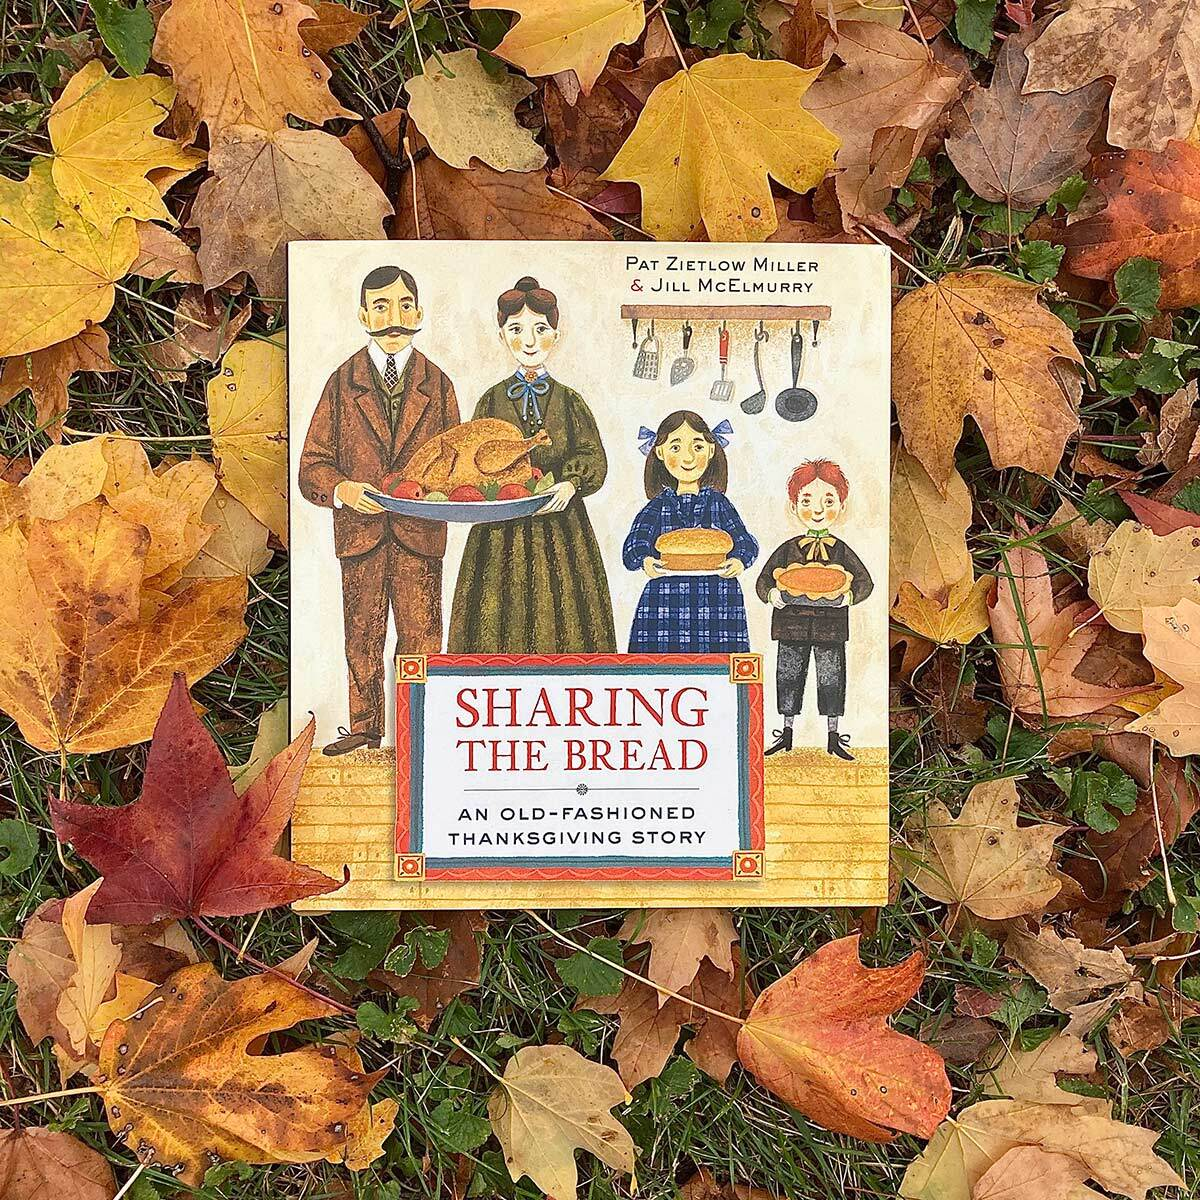 """""""Sharing the Bread: An Old Fashioned Thanksgiving Story"""" written by Pat Zietlow Miller and illustrated by Jill McElmurry book cover featuring an illustration of a family holding dishes of food. The book is sitting on top of fall leaves."""